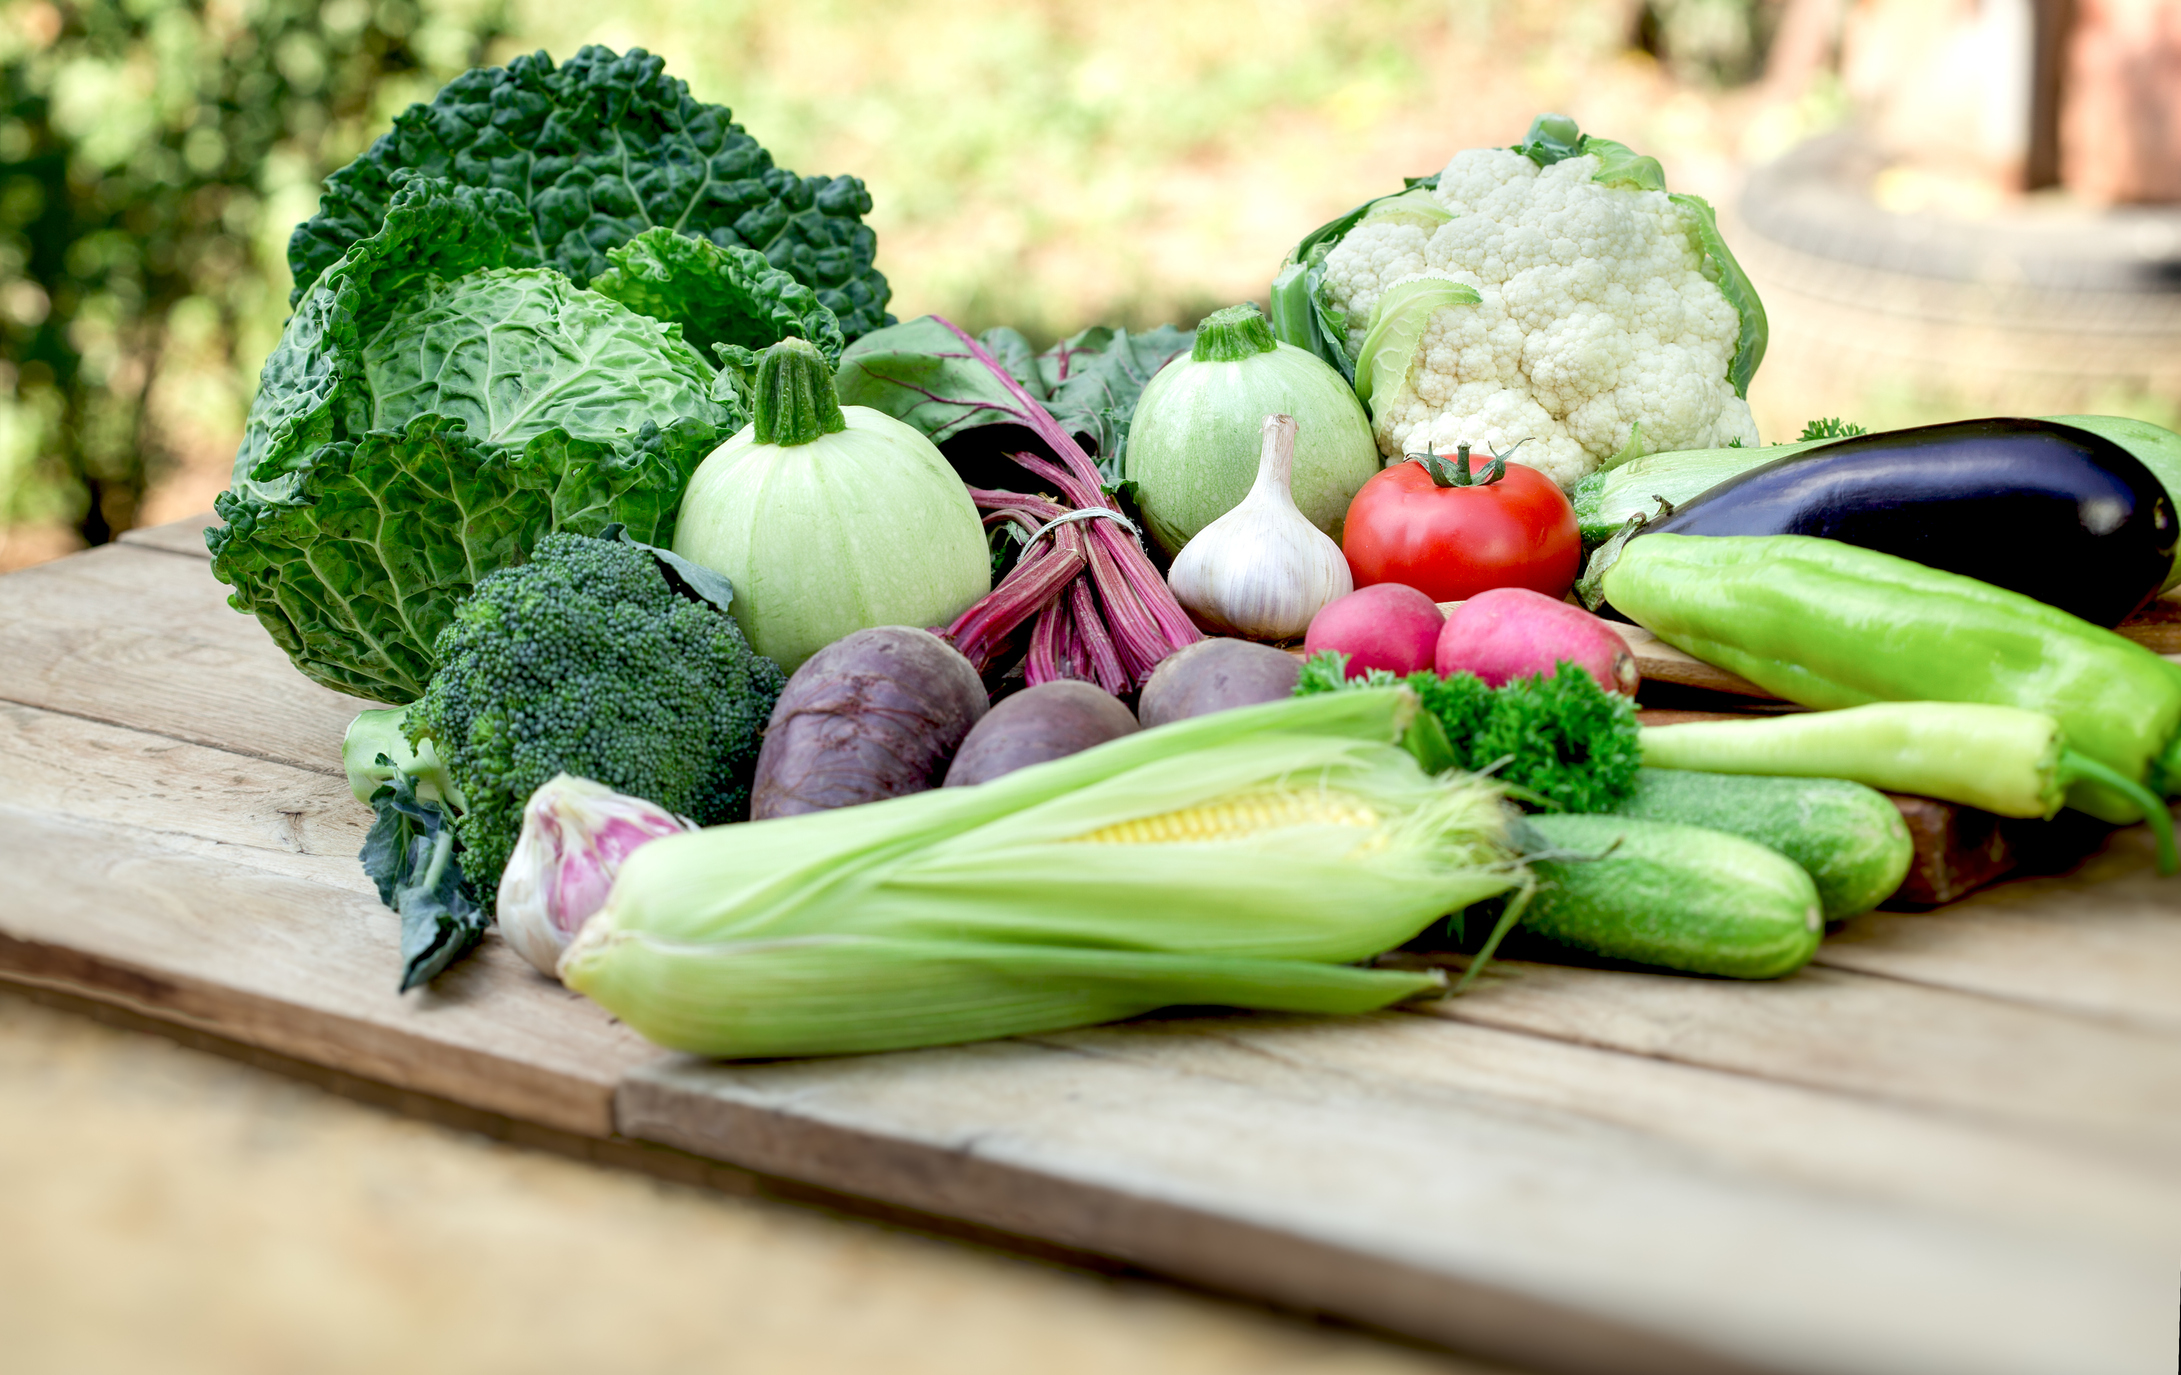 Vegetable on table, fresh organic vegetables in healthy eating